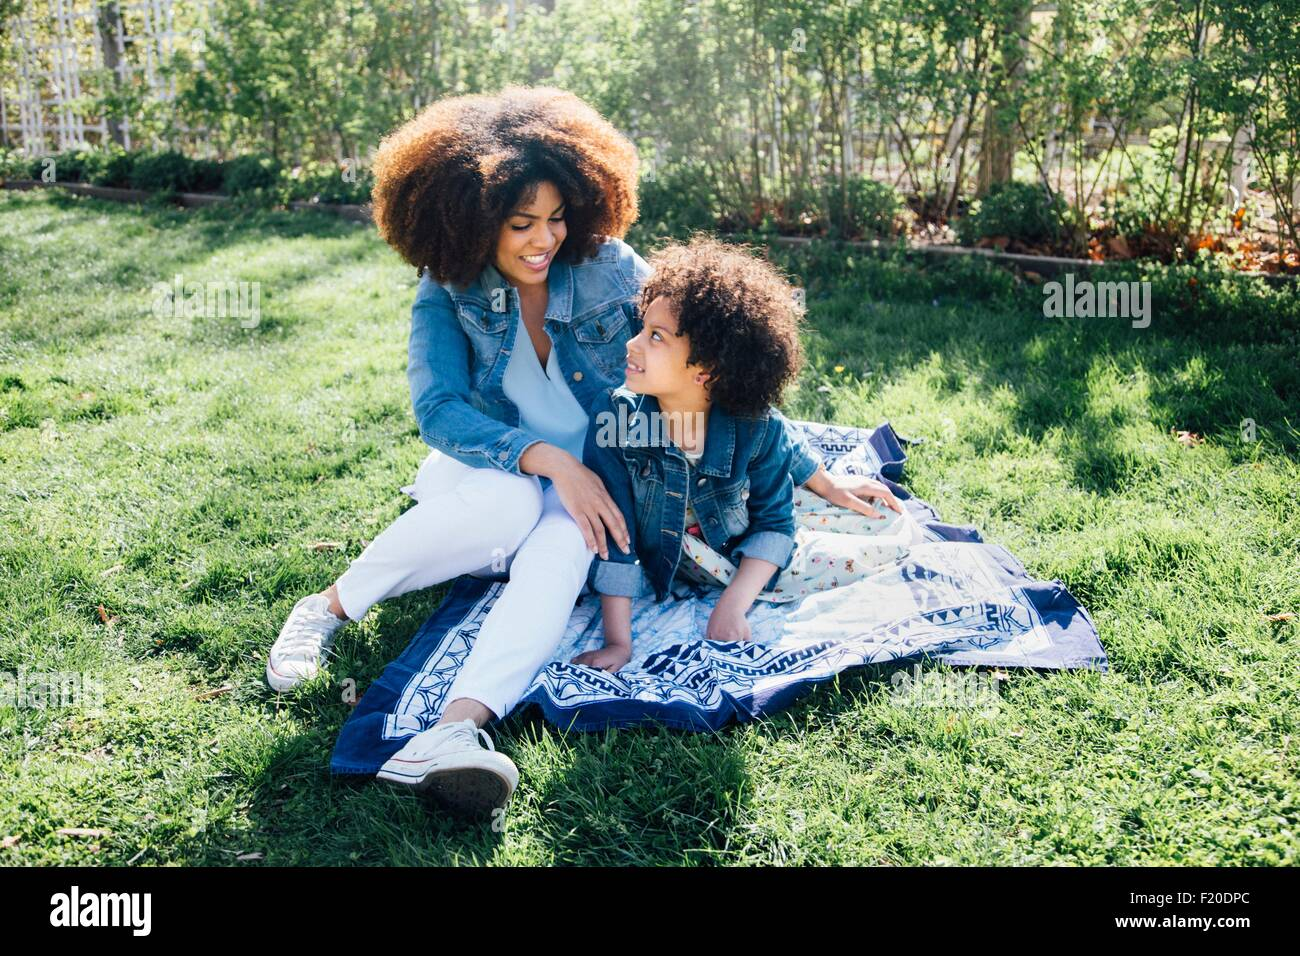 Mother with arm around daughter sitting on blanket - Stock Image